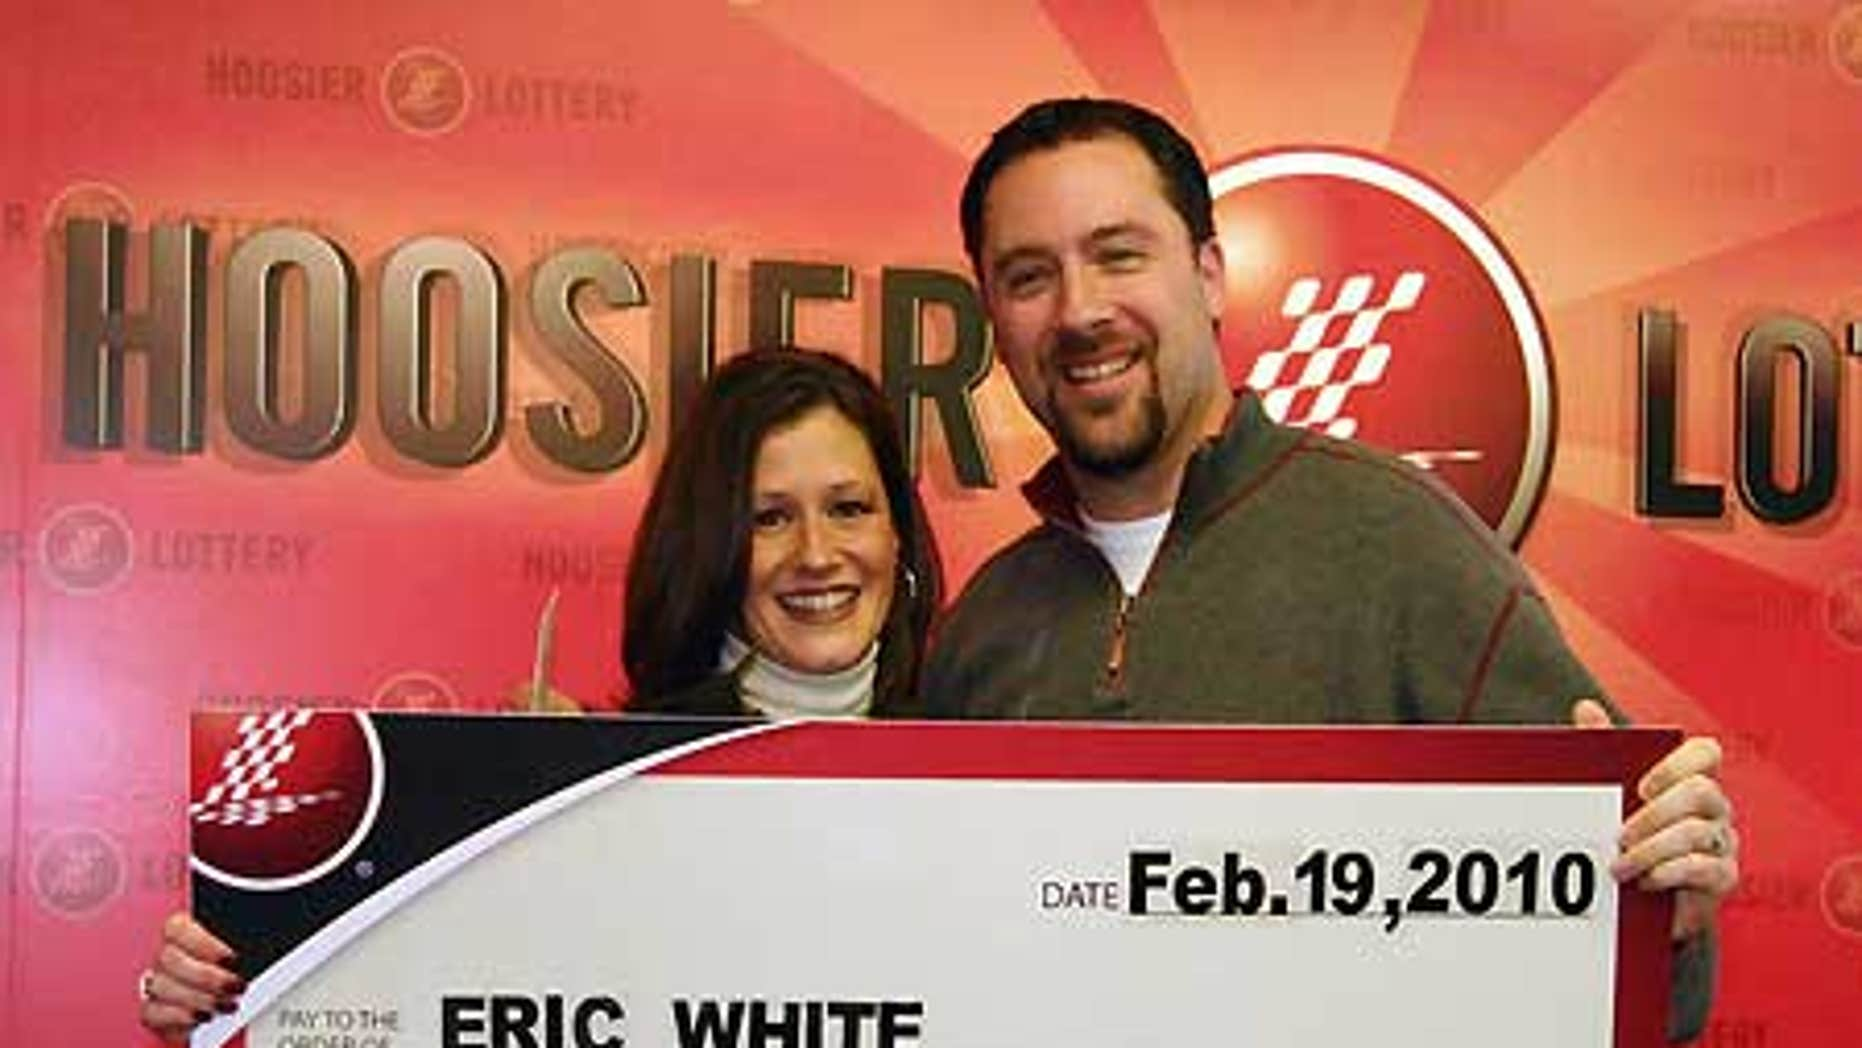 Feb. 19: This picture provided by the Hoosier Lottery shows Lori and Eric White in Indianapolis.